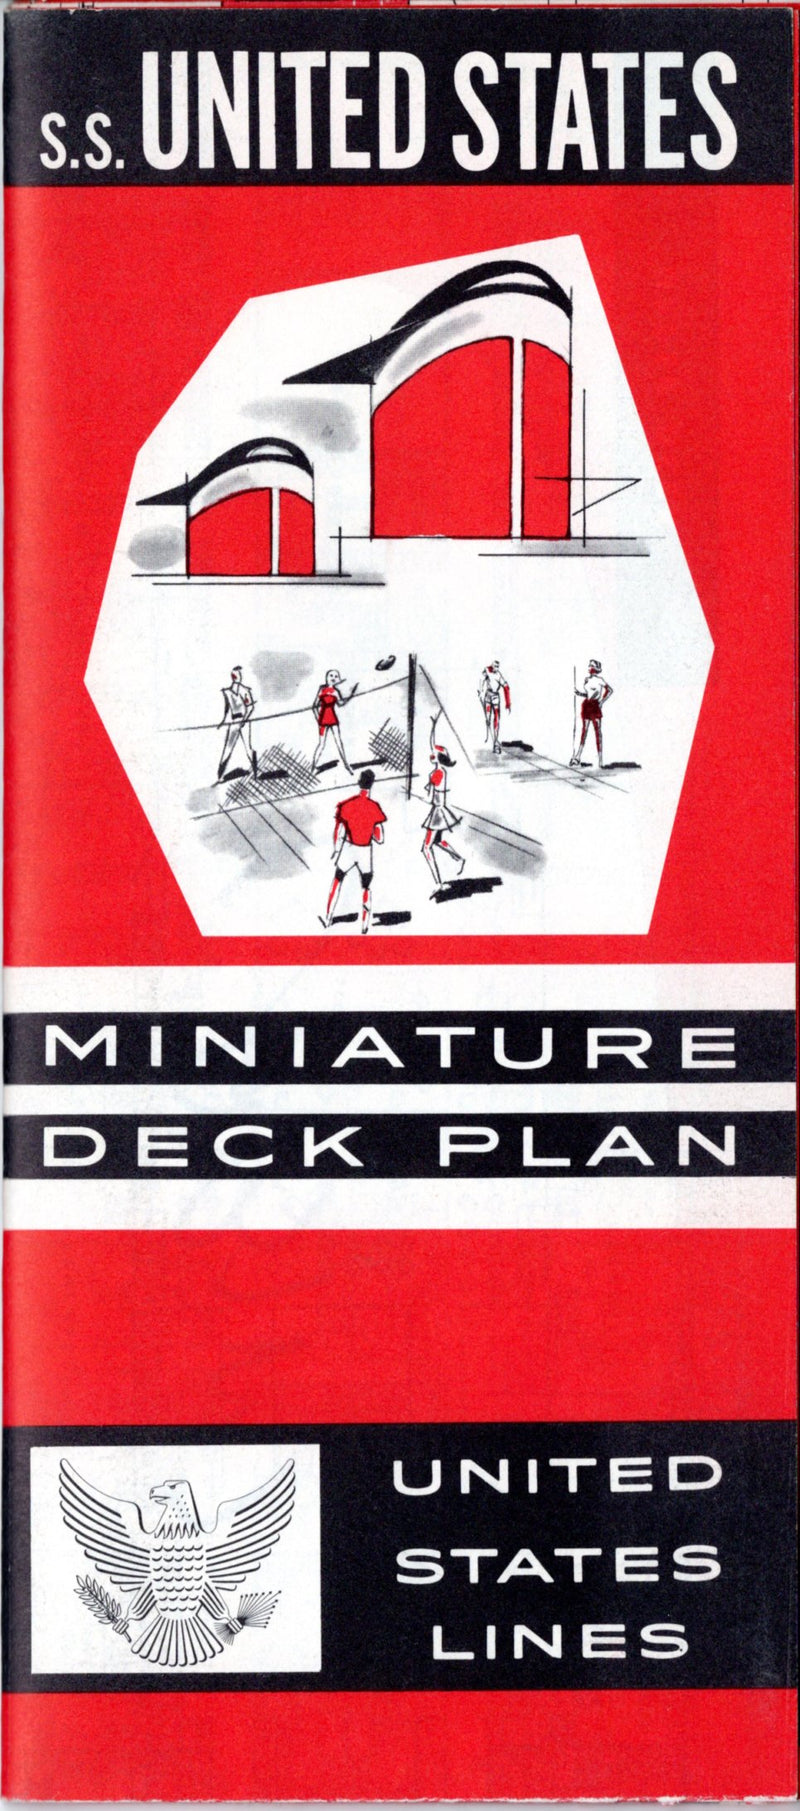 UNITED STATES: 1952 - Miniature plan with photos